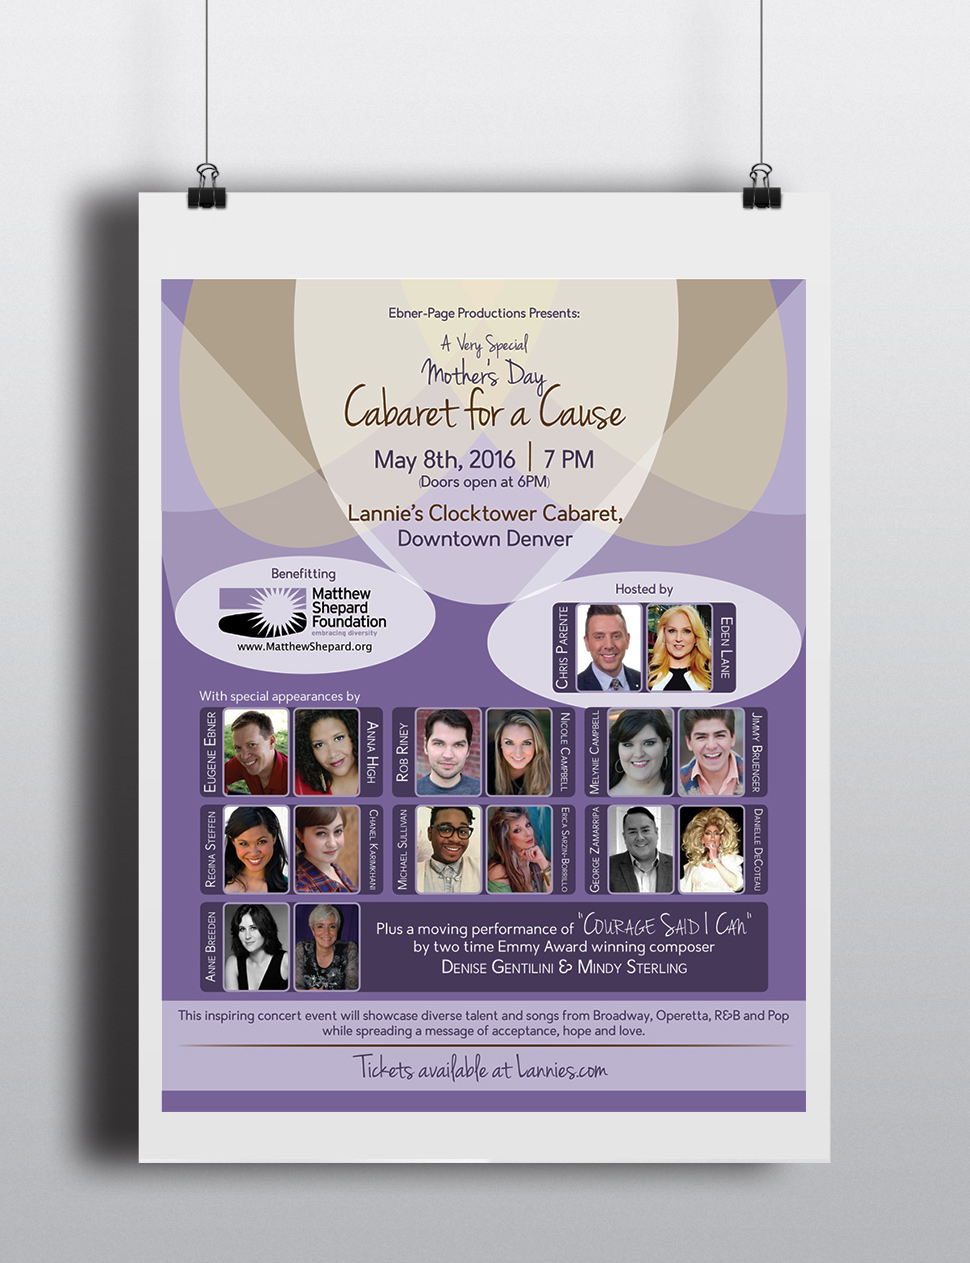 Event Poster & Sponsor Sheet: Cabaret for a Cause